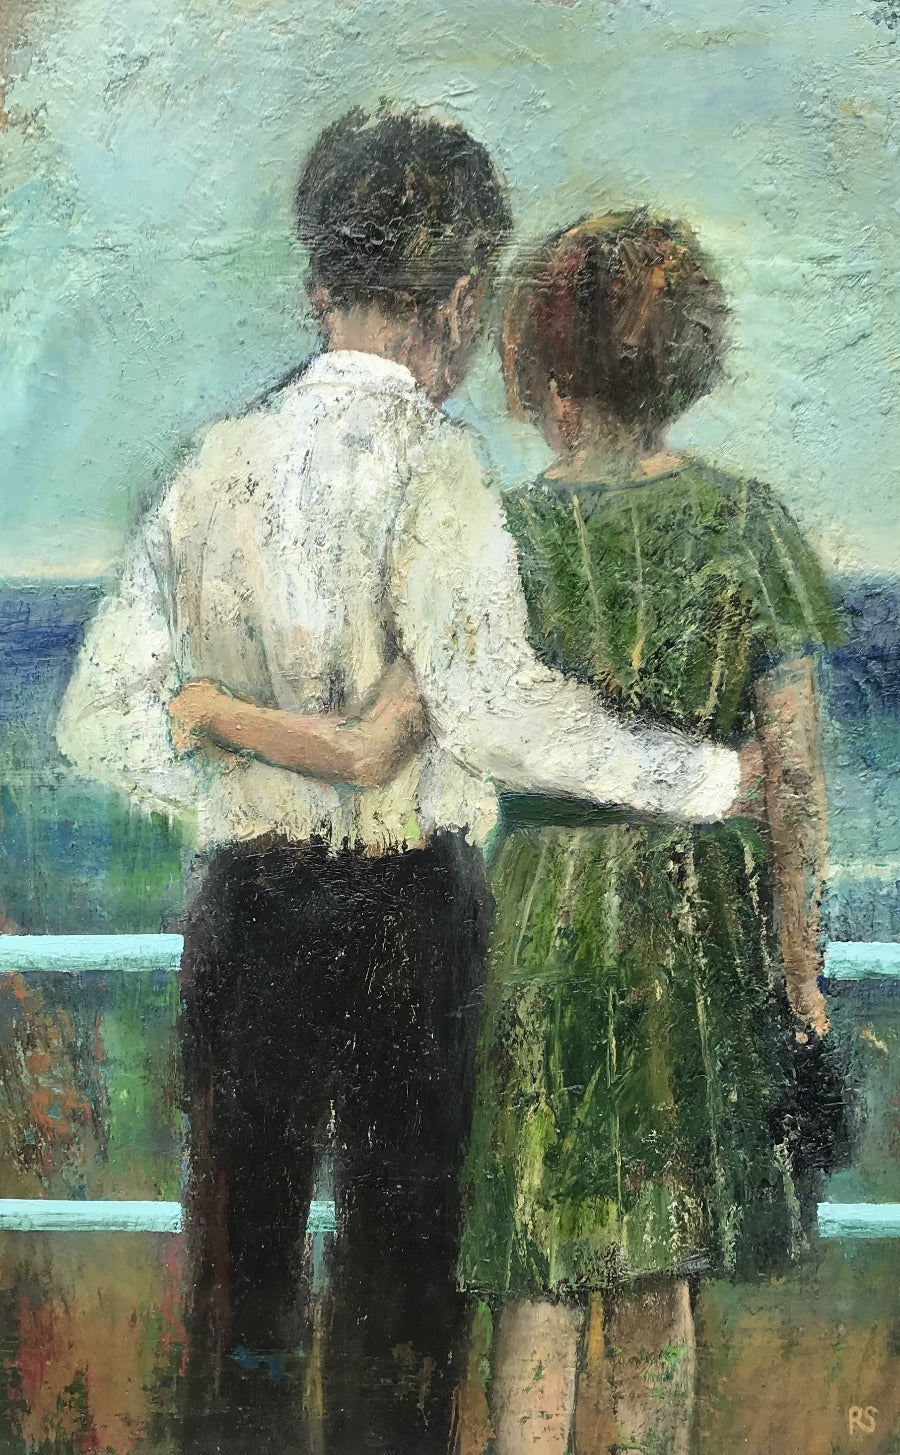 'Couple on Prom', a coastal scene oil painting by Rhonda Smith. Image shows a textured oil painting of a man in white and black and a woman in green facing away from the viewer into a stretch of blue with their arms around each other's waist.